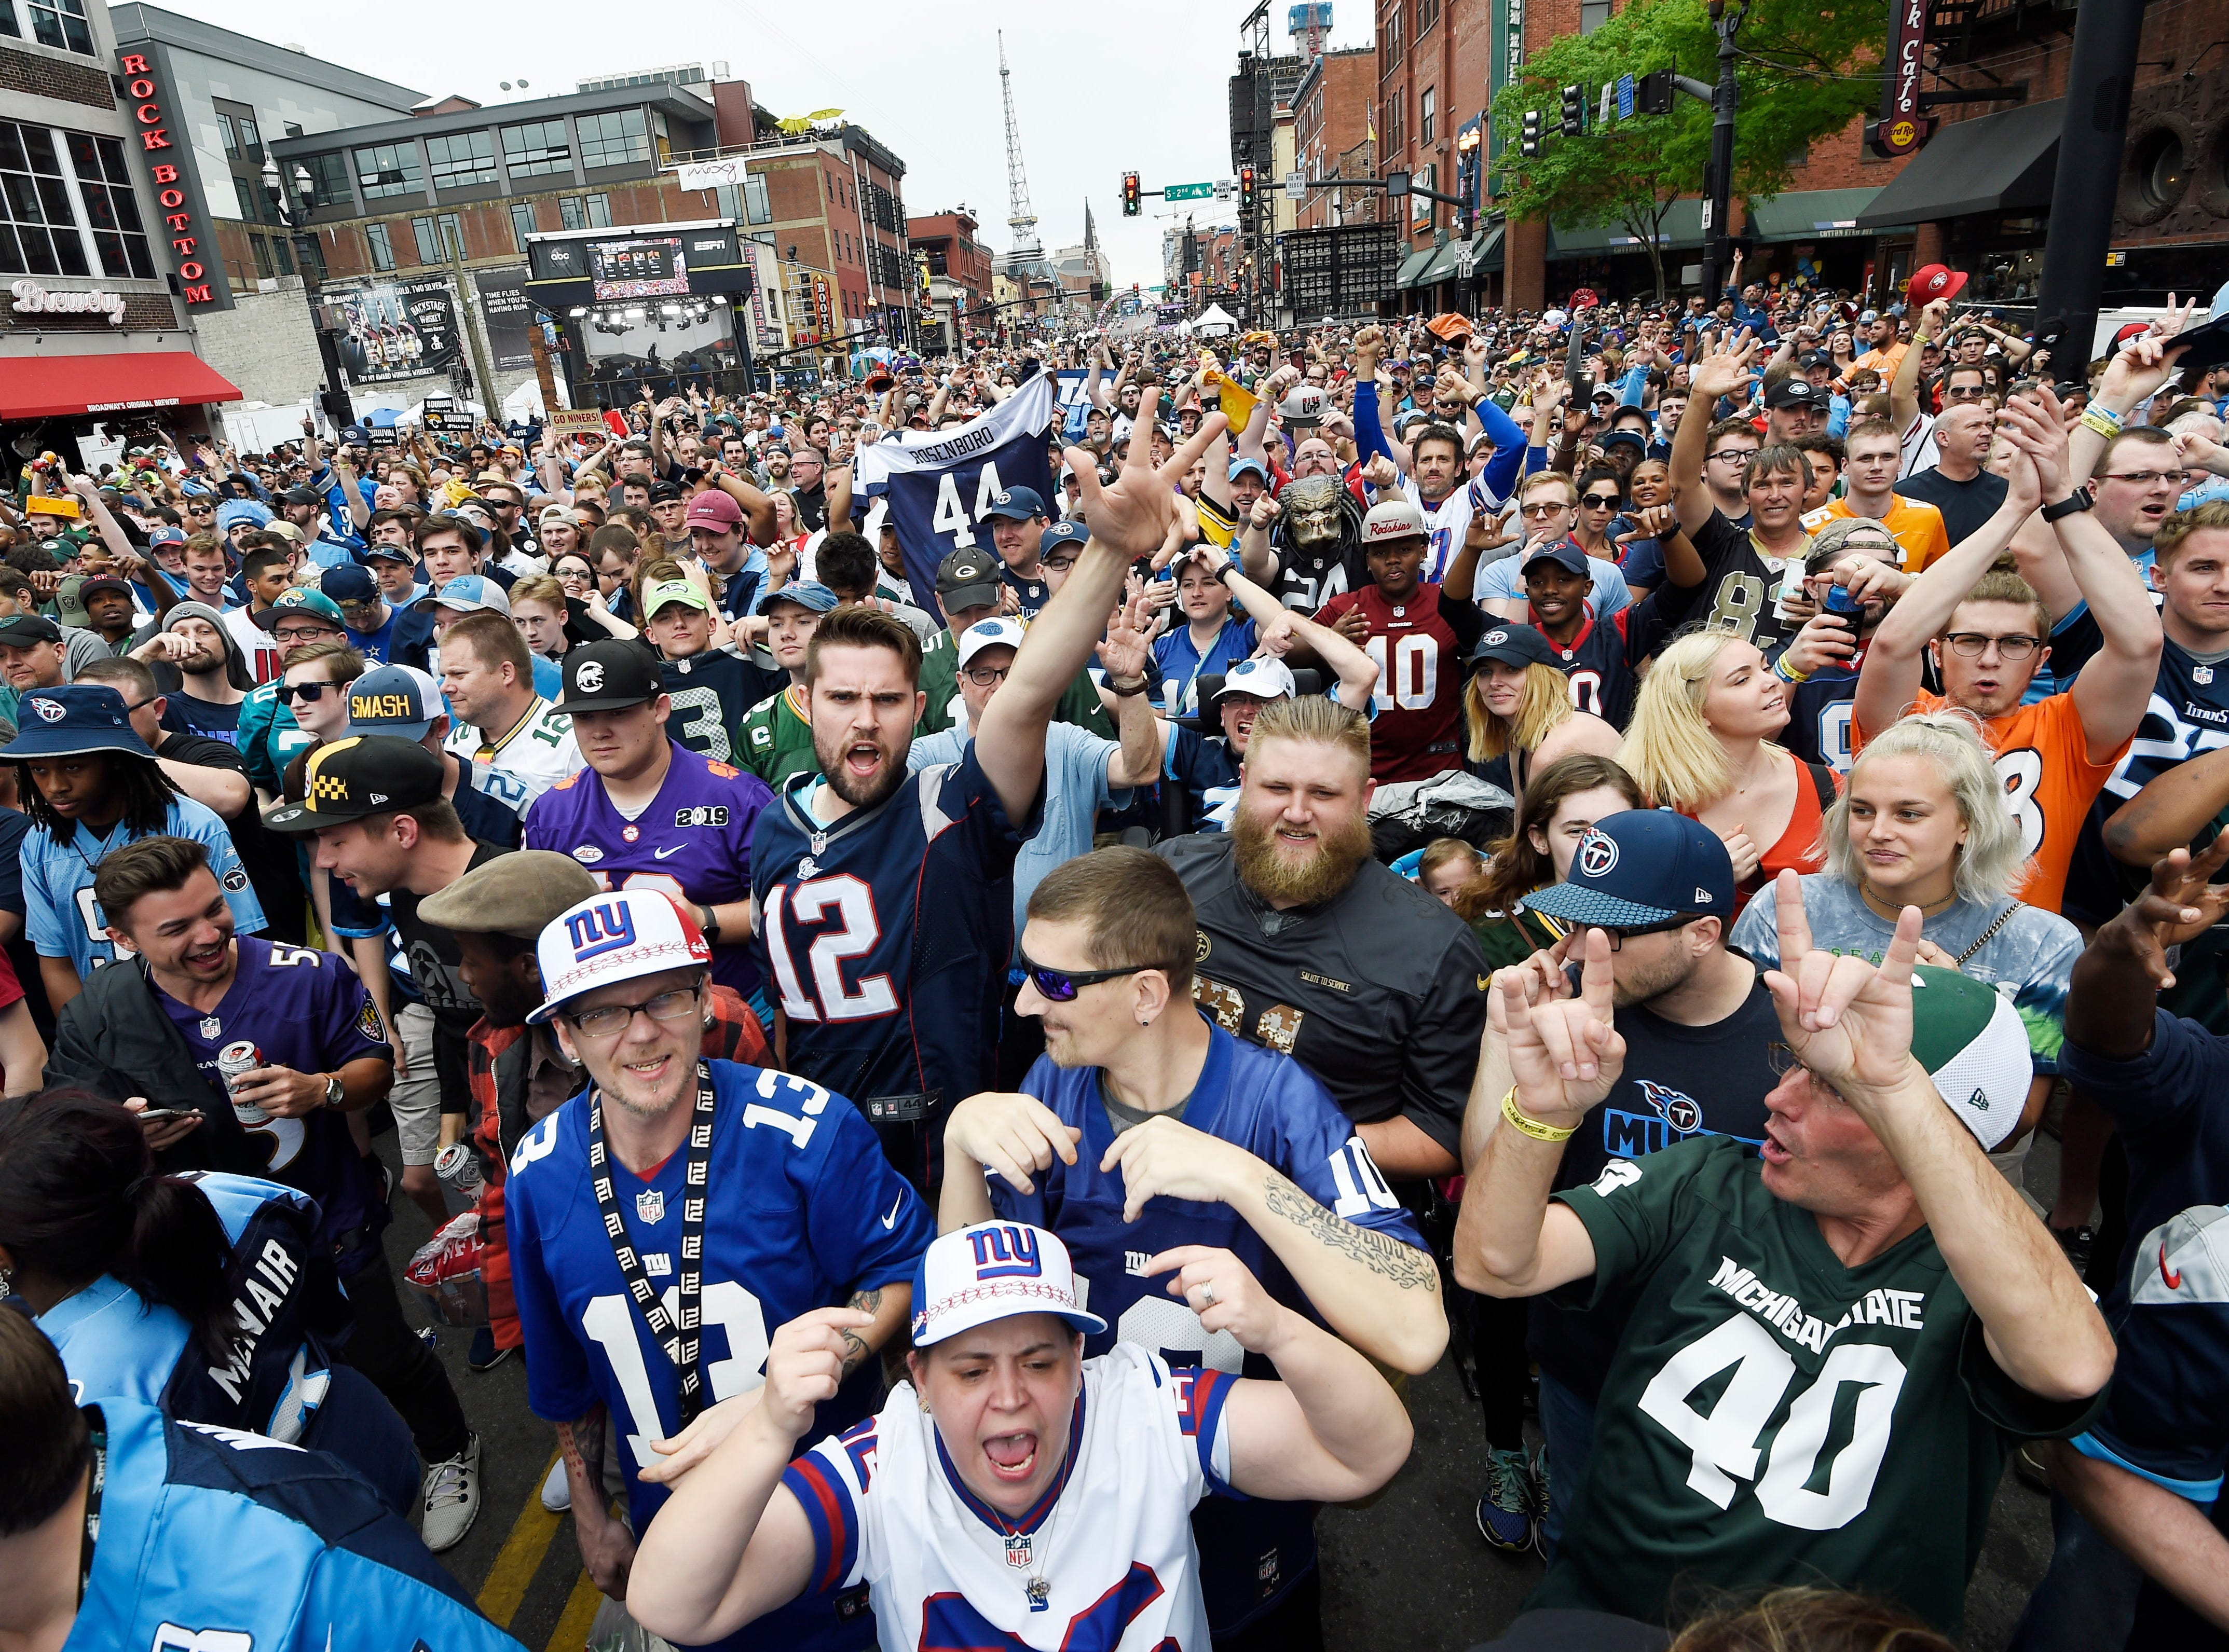 Football fans fill Lower Broadway before the start of the first round of the NFL Draft Thursday, April 25, 2019 in Nashville, Tenn.